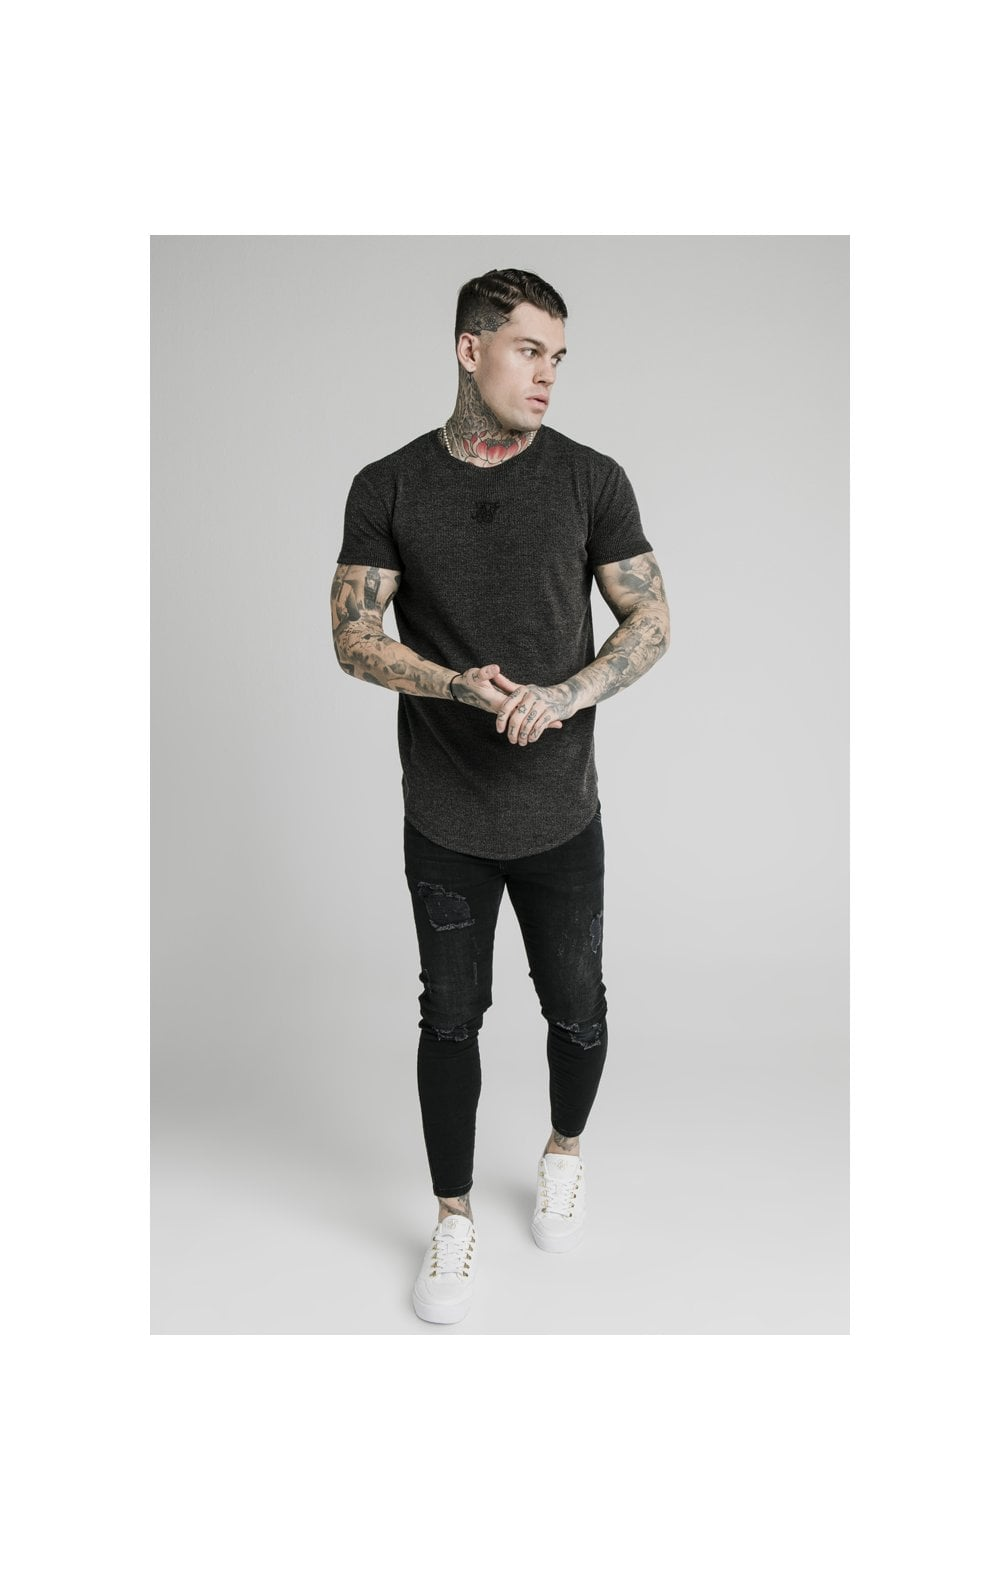 Load image into Gallery viewer, SikSilk Rib Knit Gym Tee - Black (4)